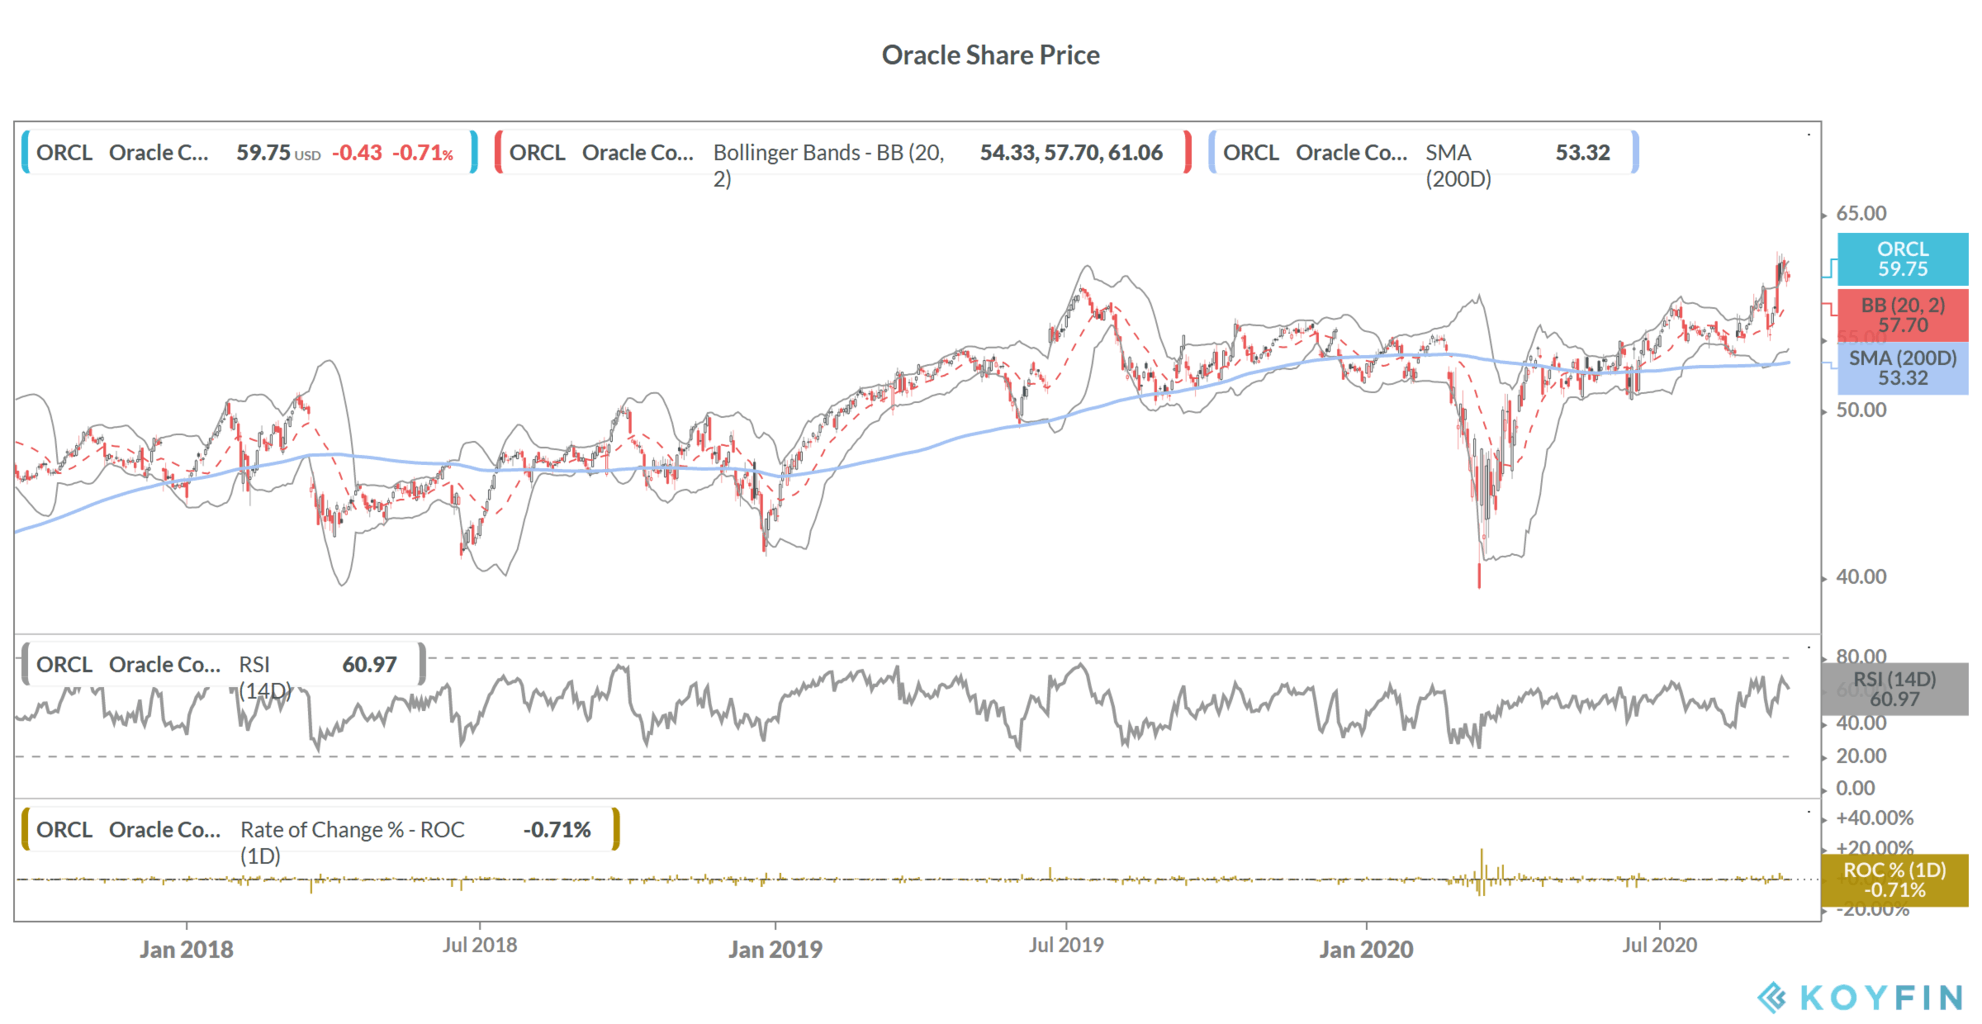 Oracle share price